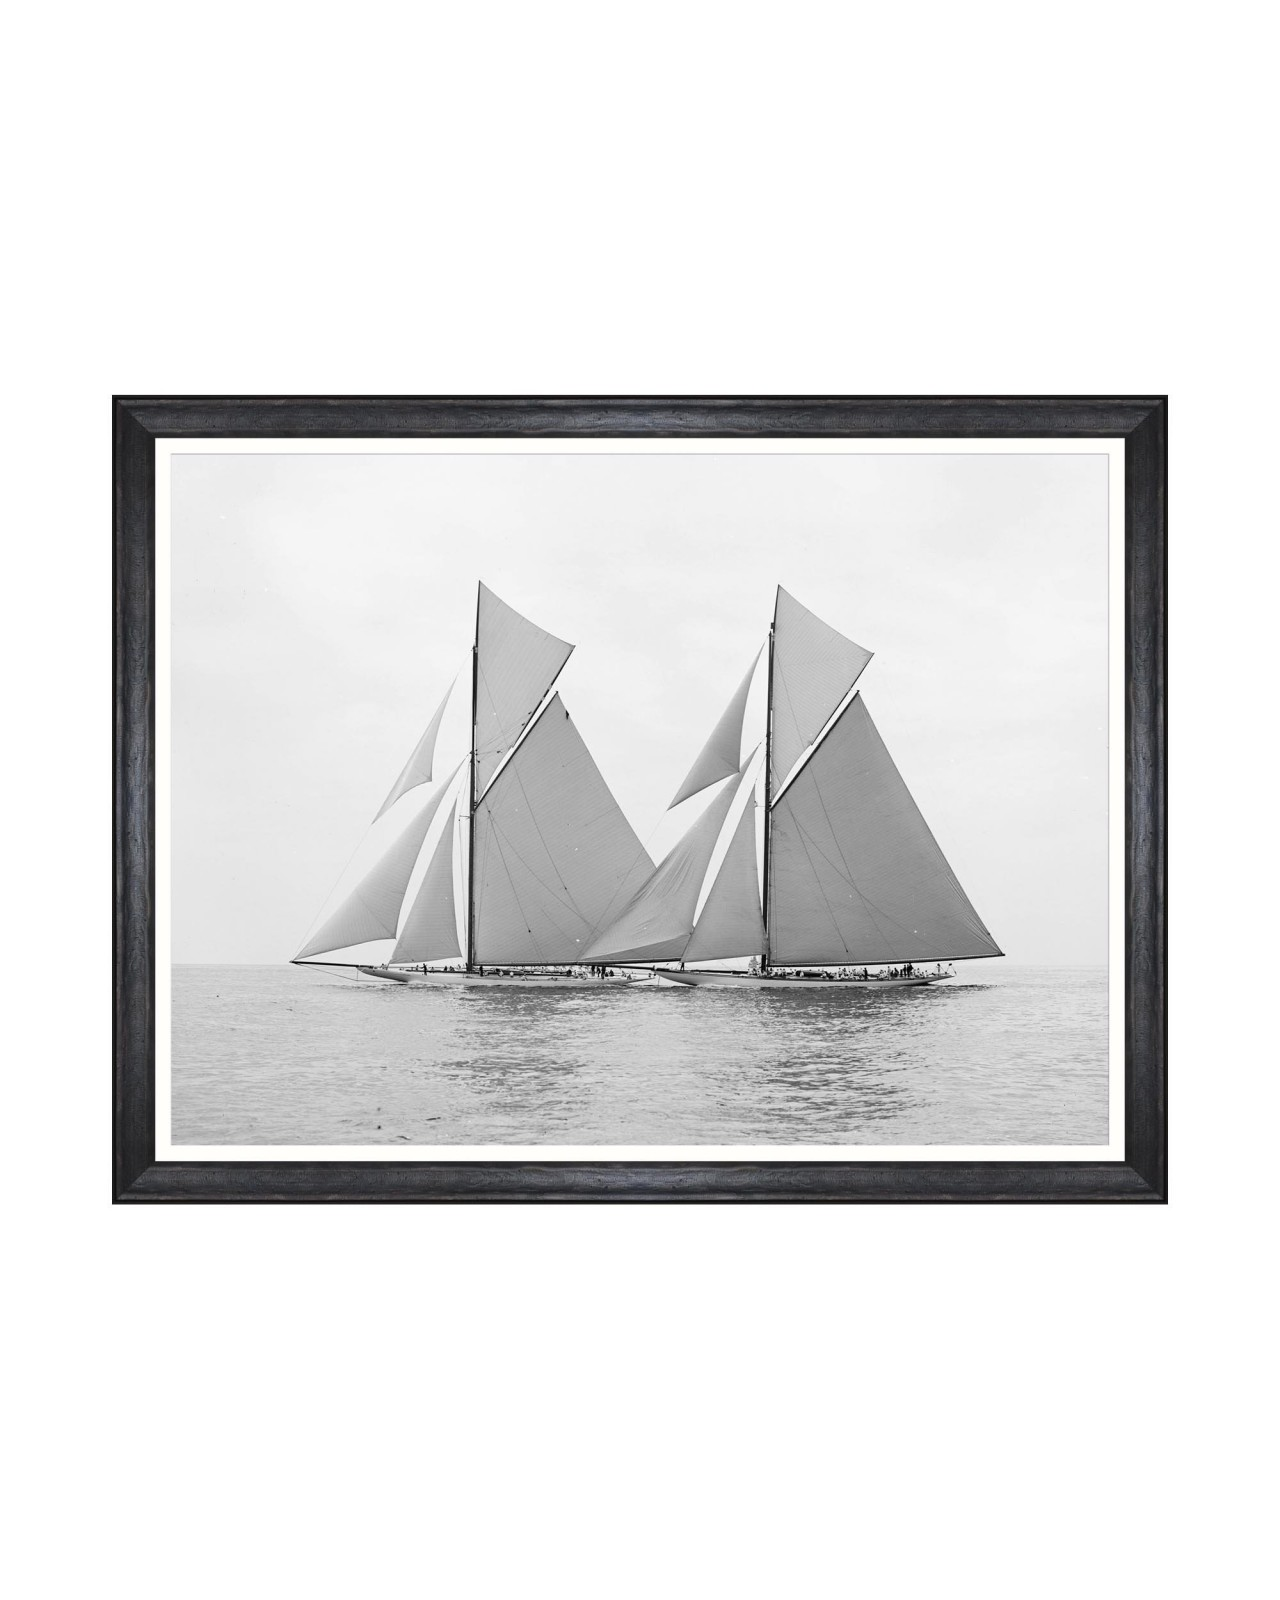 AMERICA'S CUP - RELIANCE AND SHAMROCK 1903 Framed Art